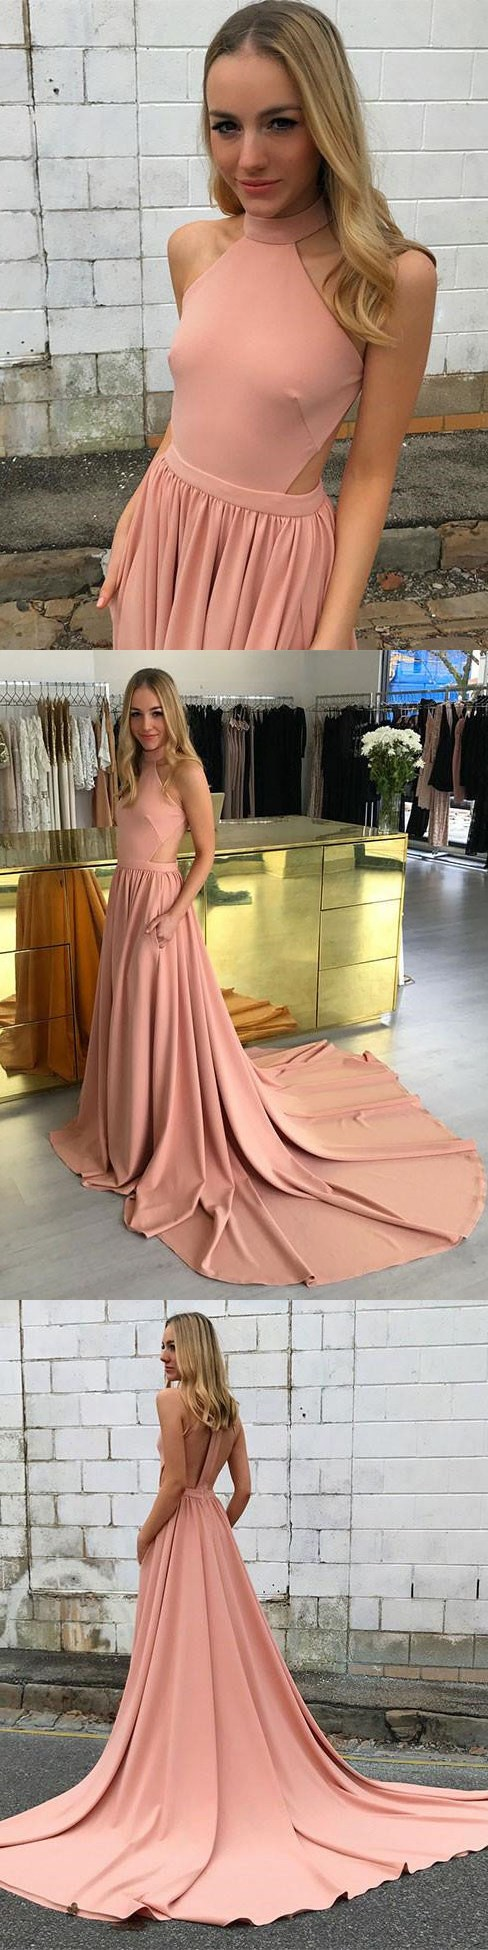 Elegant High Neck Coral Long Prom Dress with Train